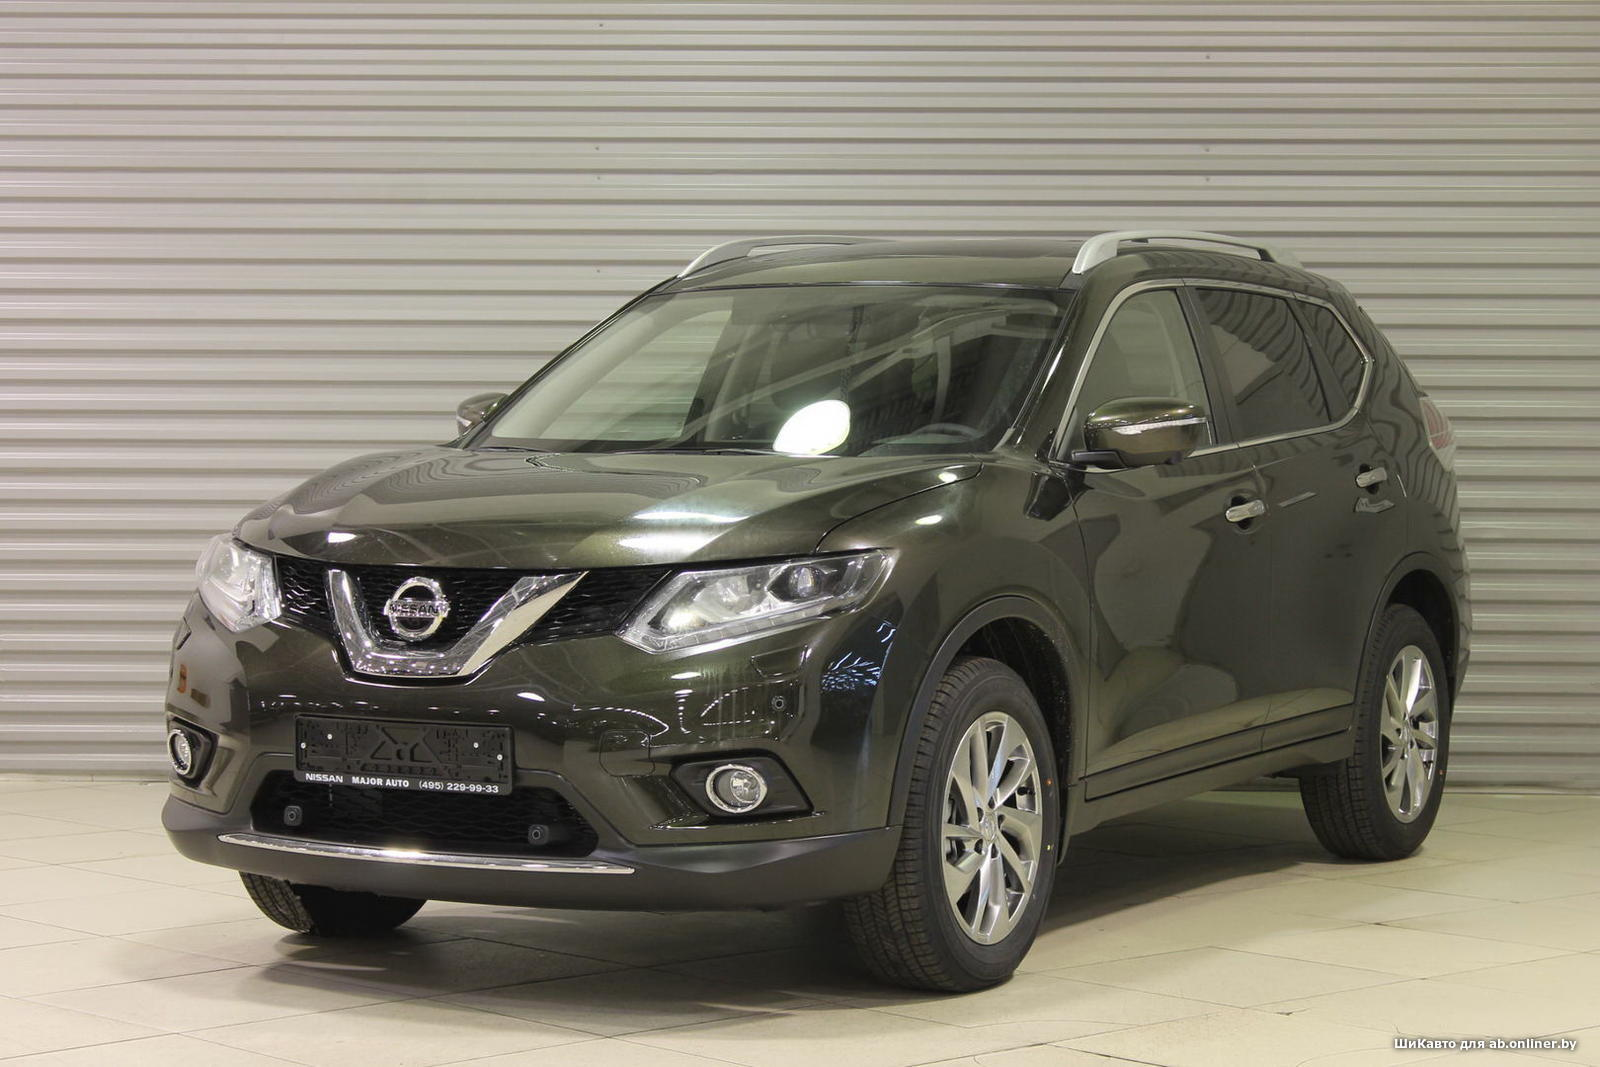 Nissan X-Trail 2.0 SE TOP 2WD